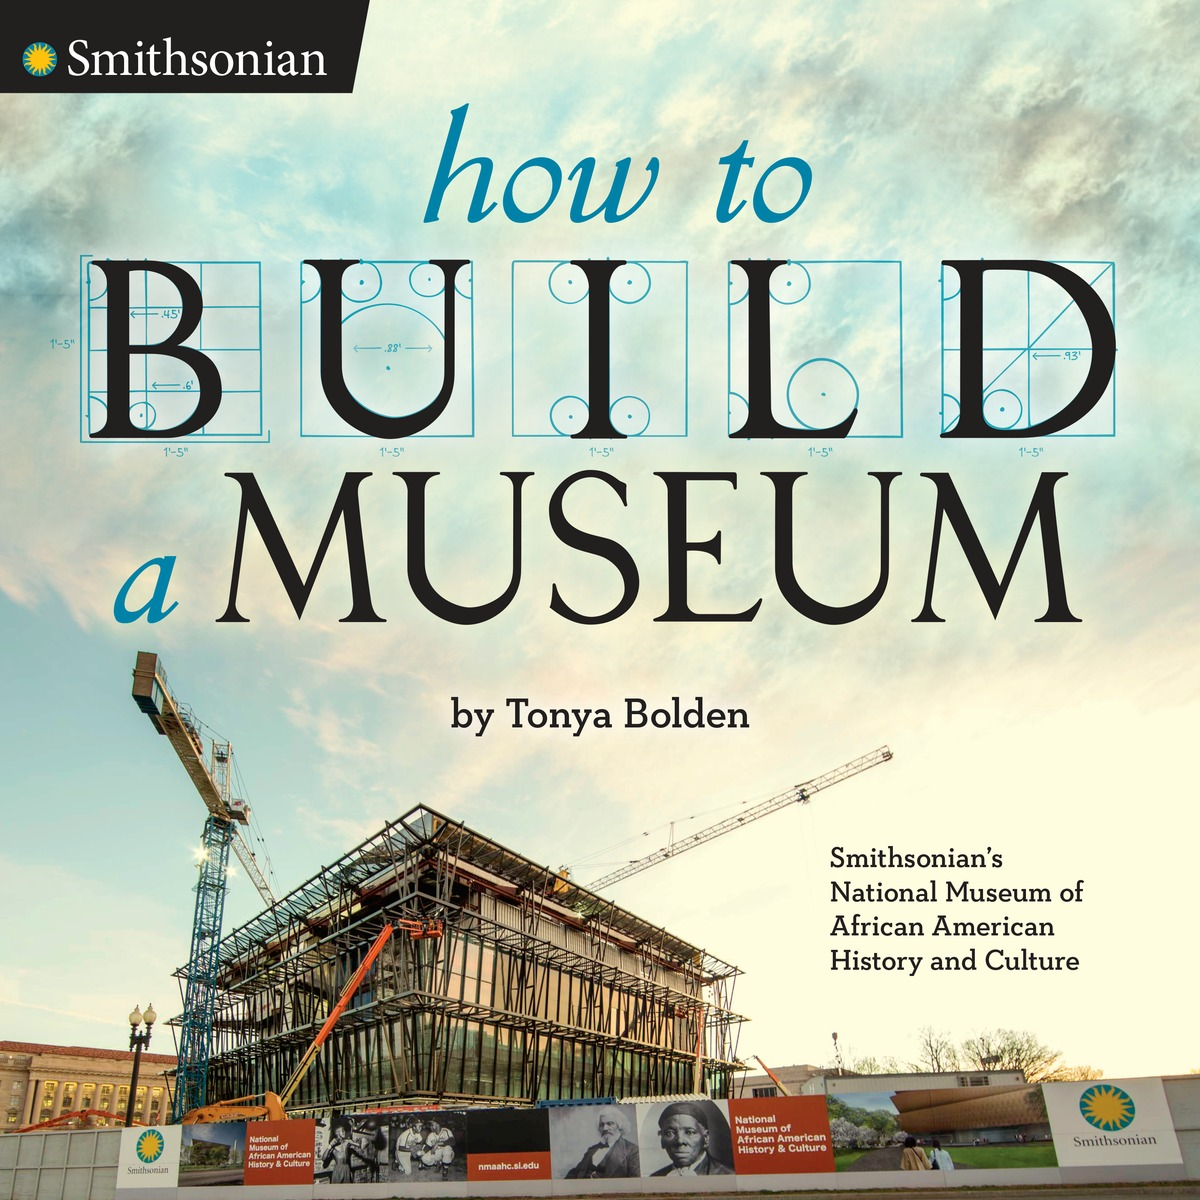 How to Build a Museum matts ola ishoel how to build a winning team serving god together